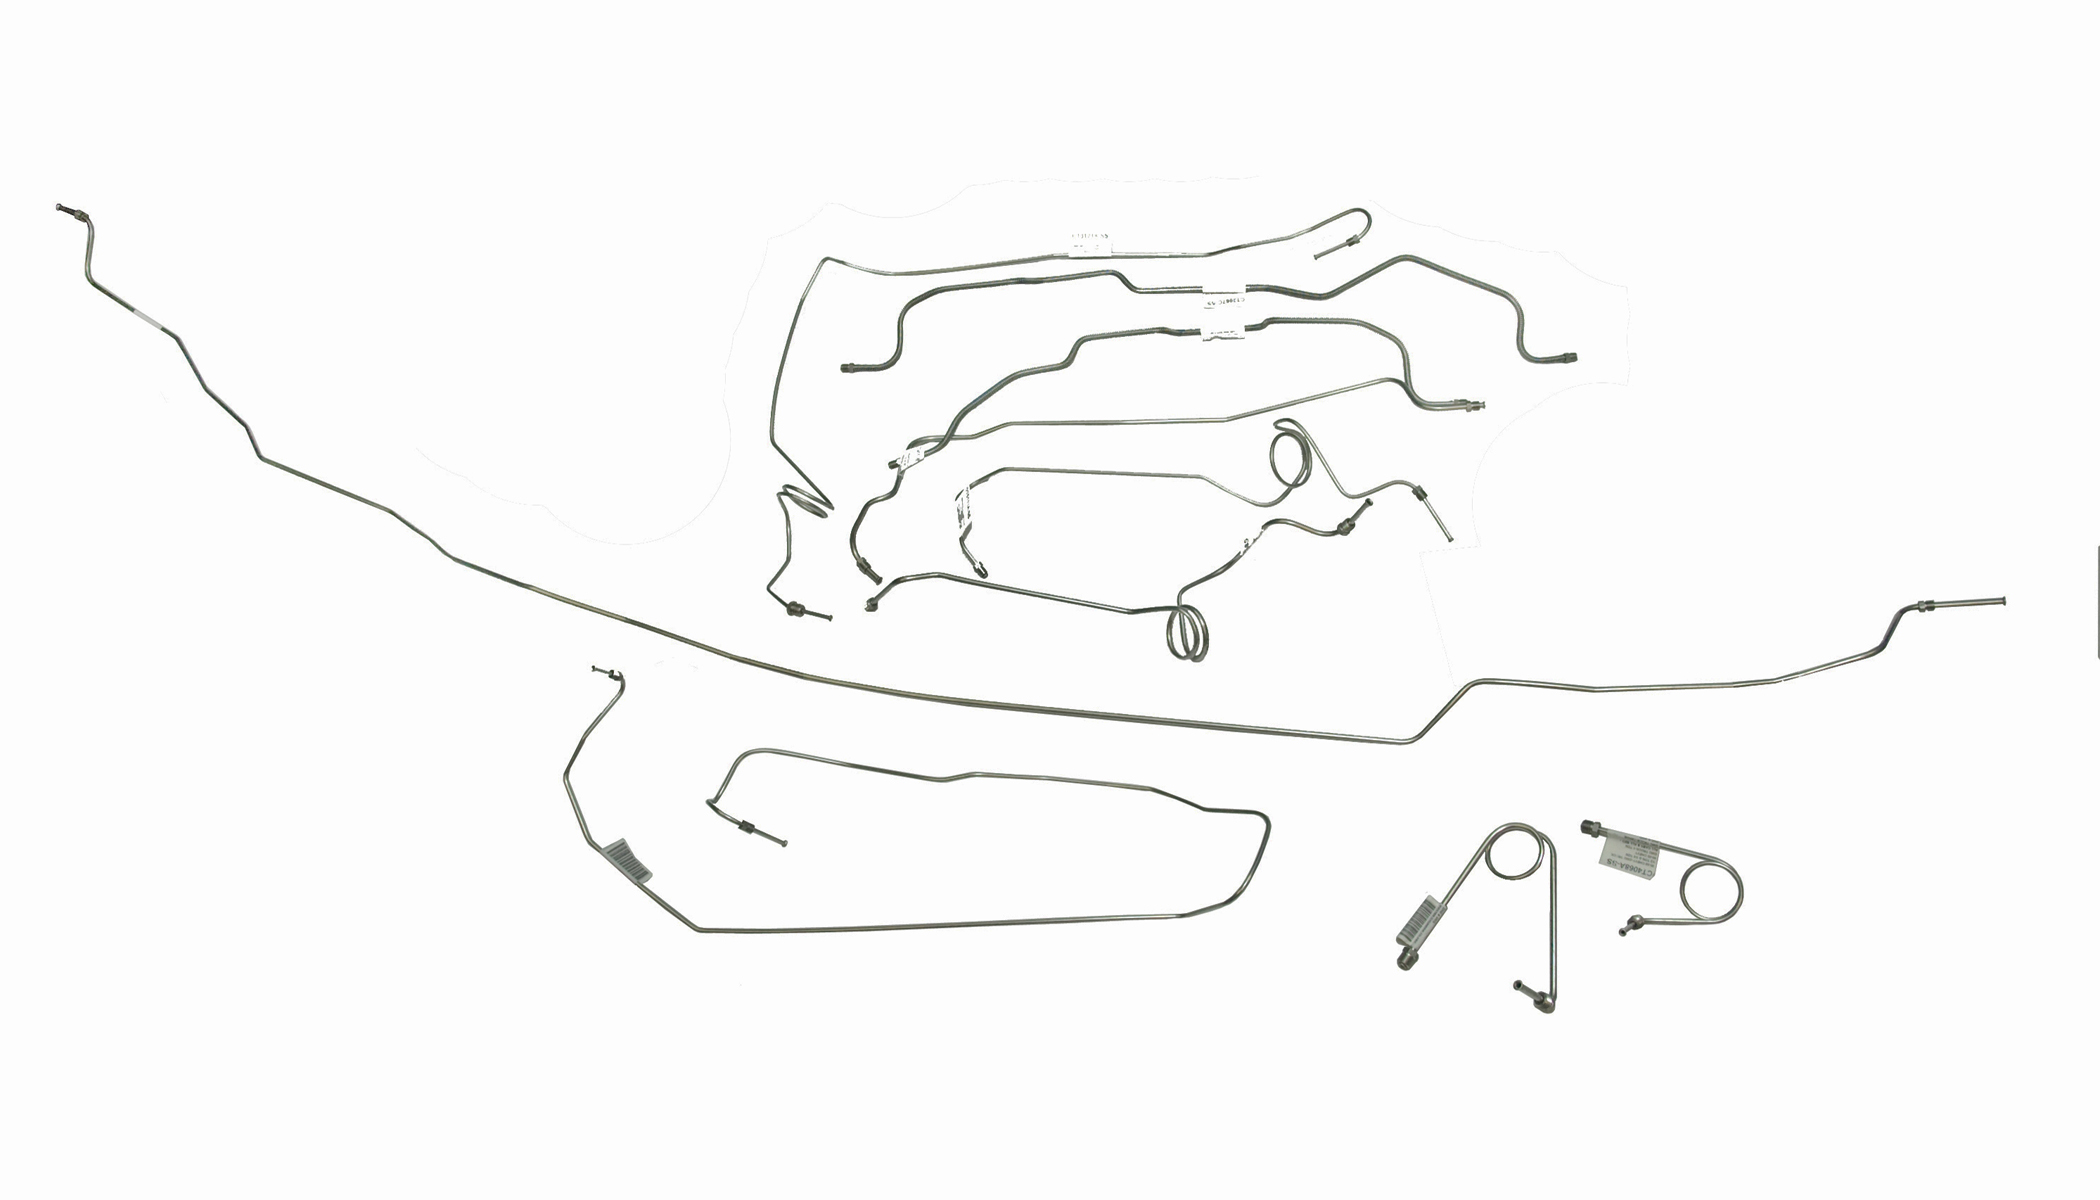 REPLACEMENT BRAKE AND FUEL LINES FOR GM/GMC 4WD TRUCKS